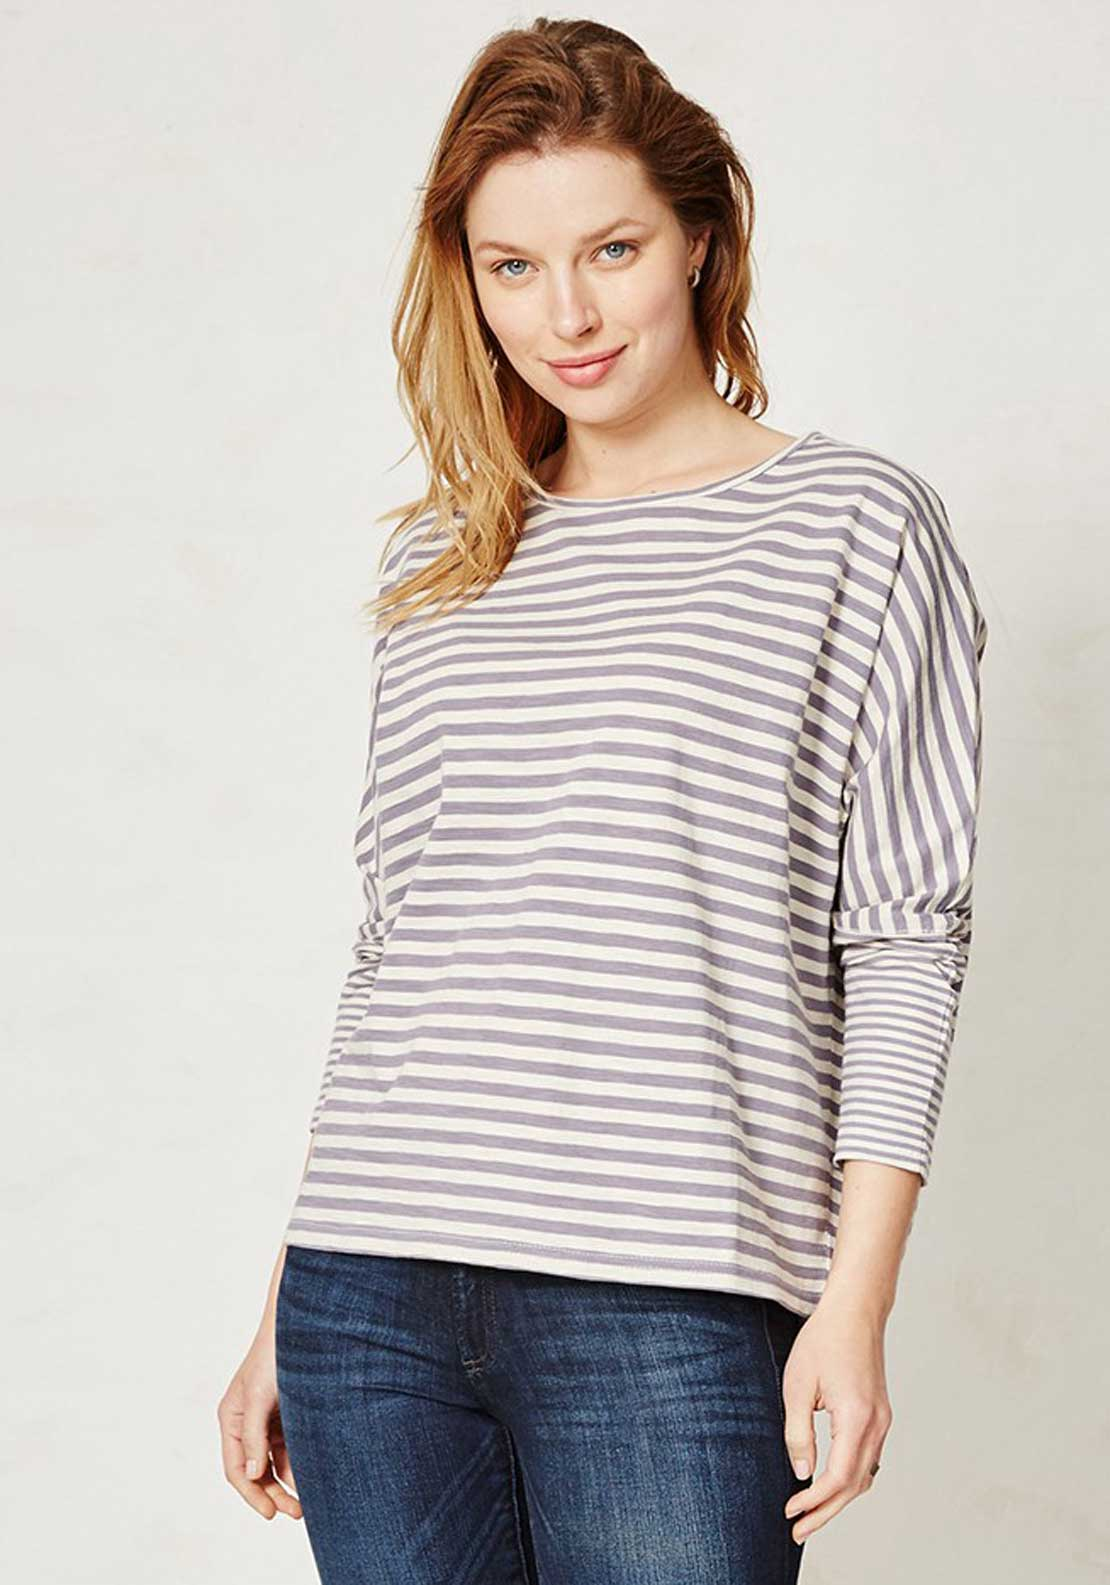 Braintree Lilli Striped Long Sleeve T-Shirt, Blue and Cream